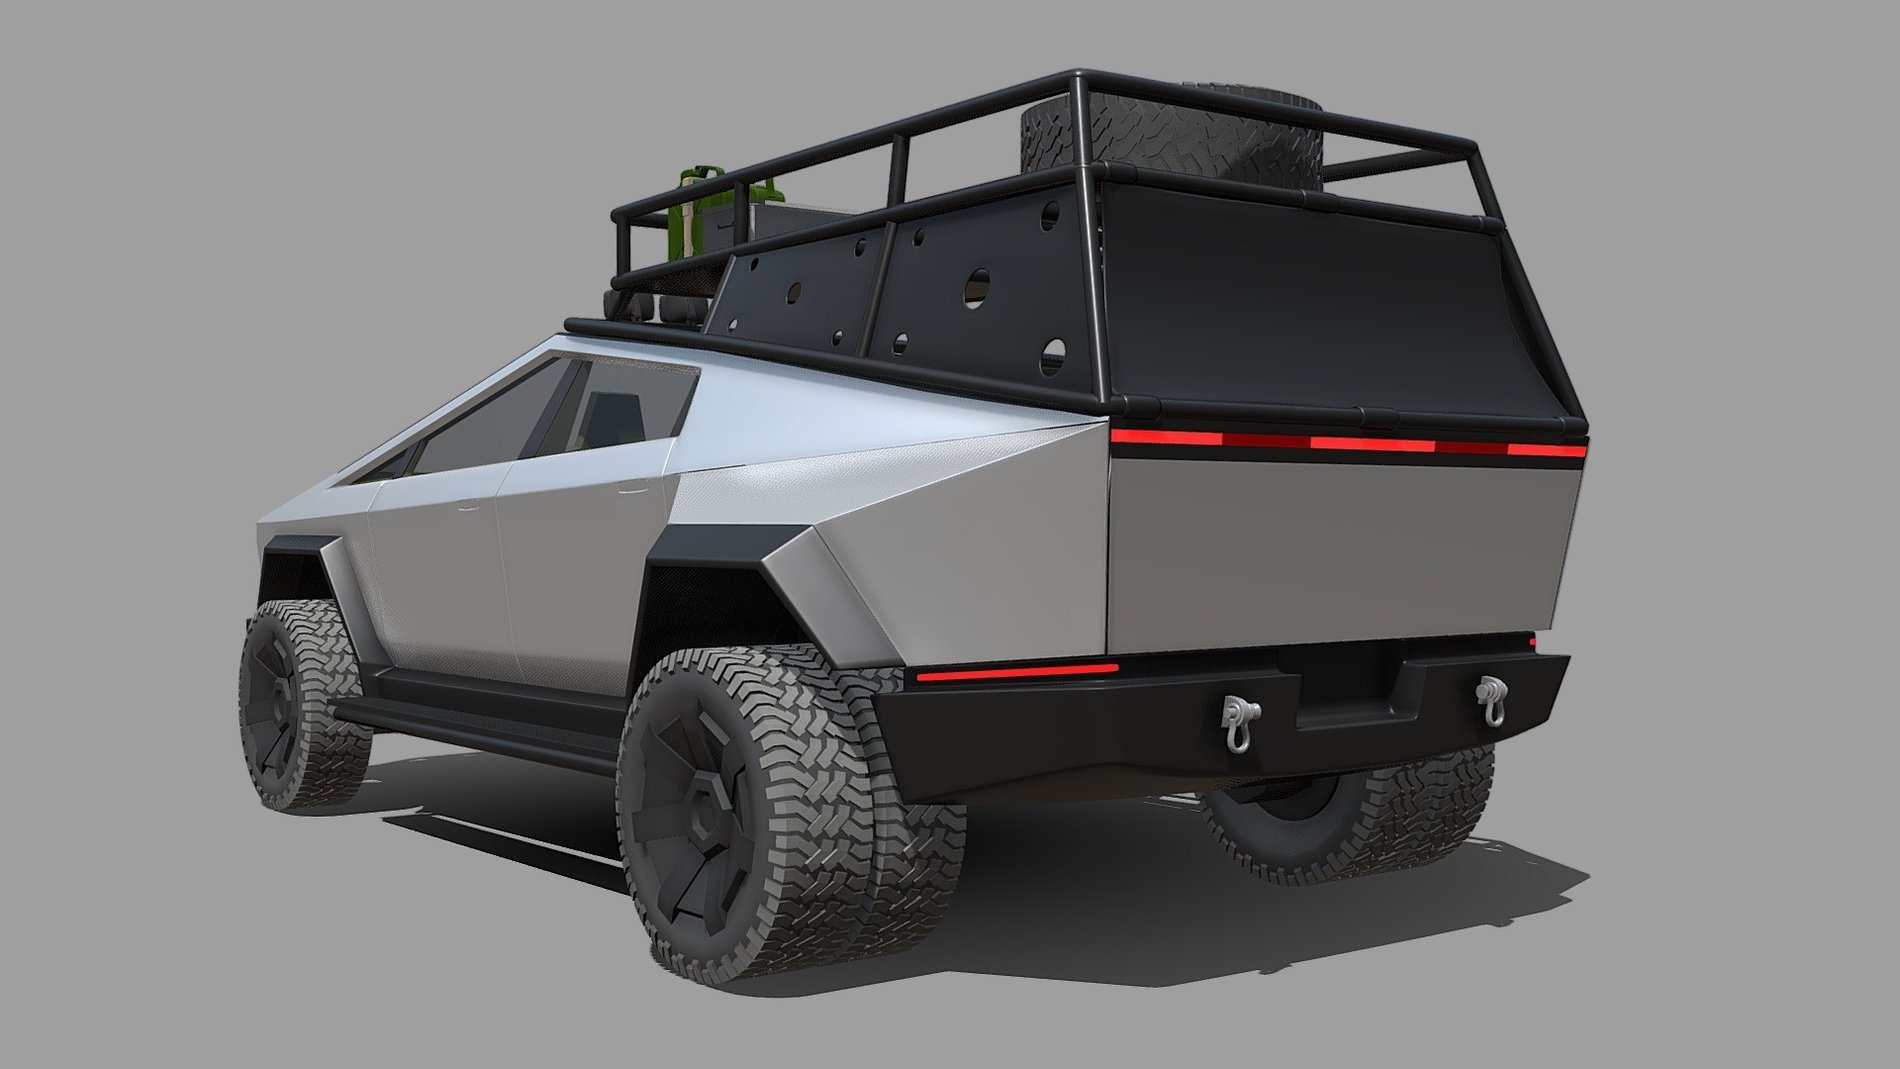 Roof_Bed_Cargo_Rack_Tesla_Cybertruck_OffRoad_011.jpg